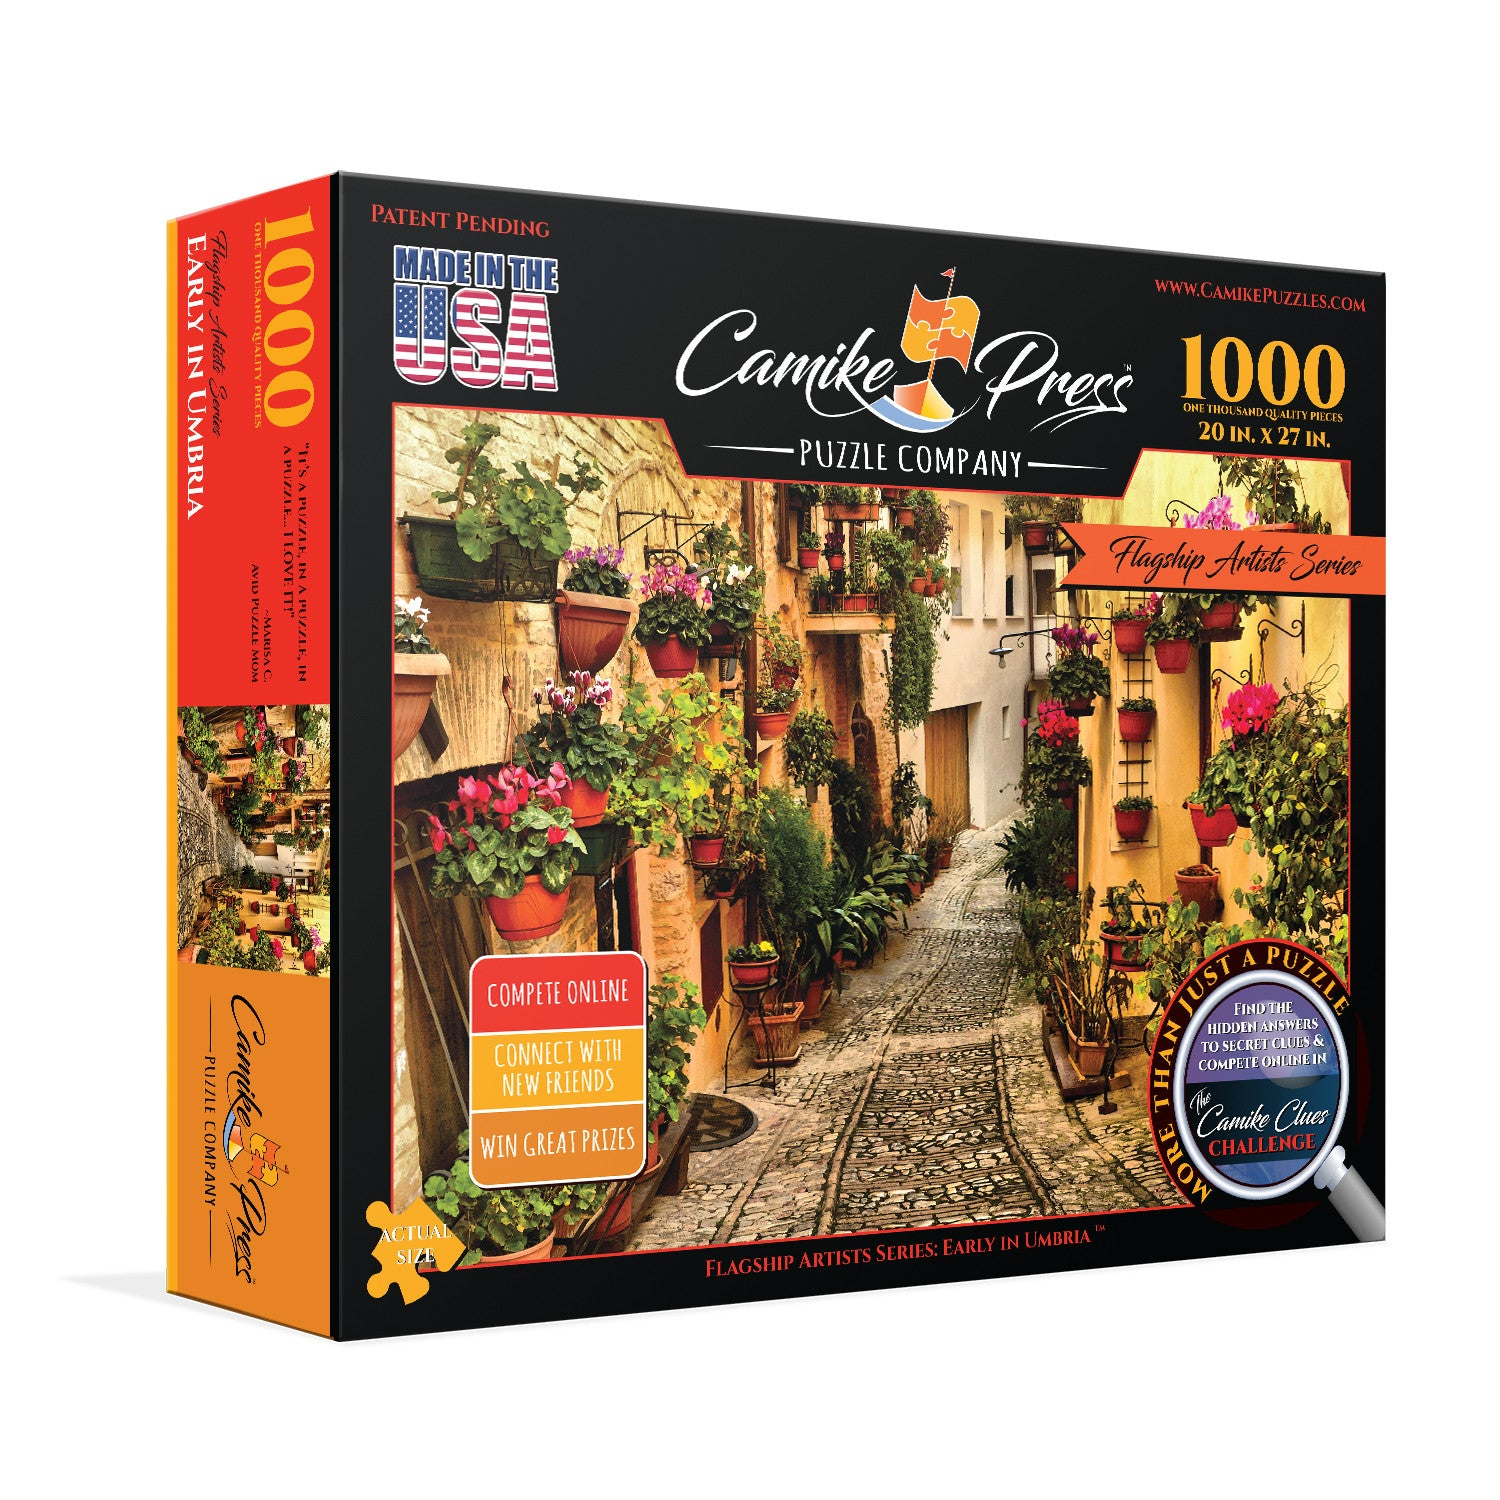 Early in Umbria 1000 Piece Jigsaw Puzzle | Camike Press Puzzle Company